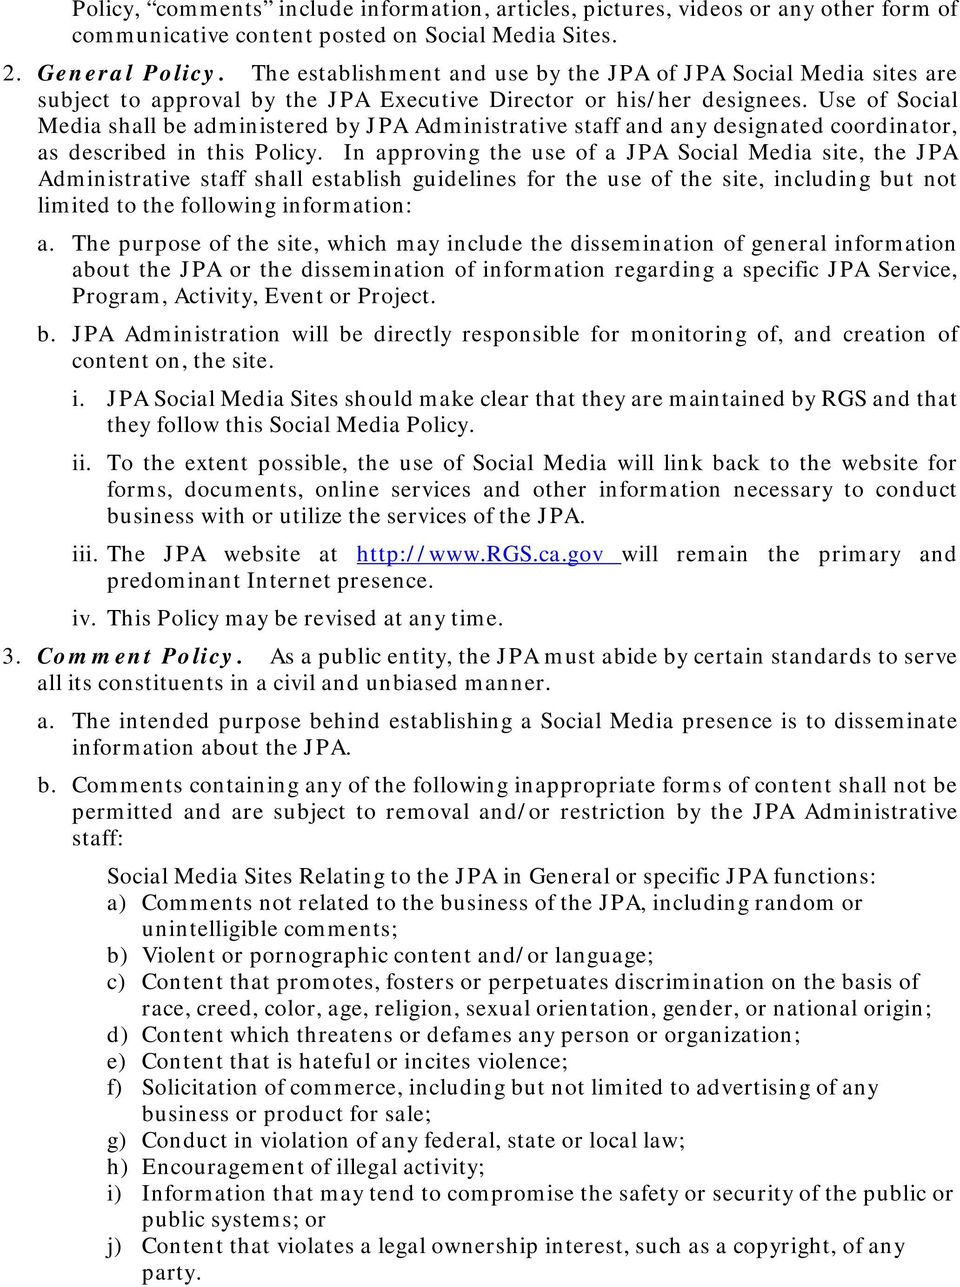 Use of Social Media shall be administered by JPA Administrative staff and any designated coordinator, as described in this Policy.